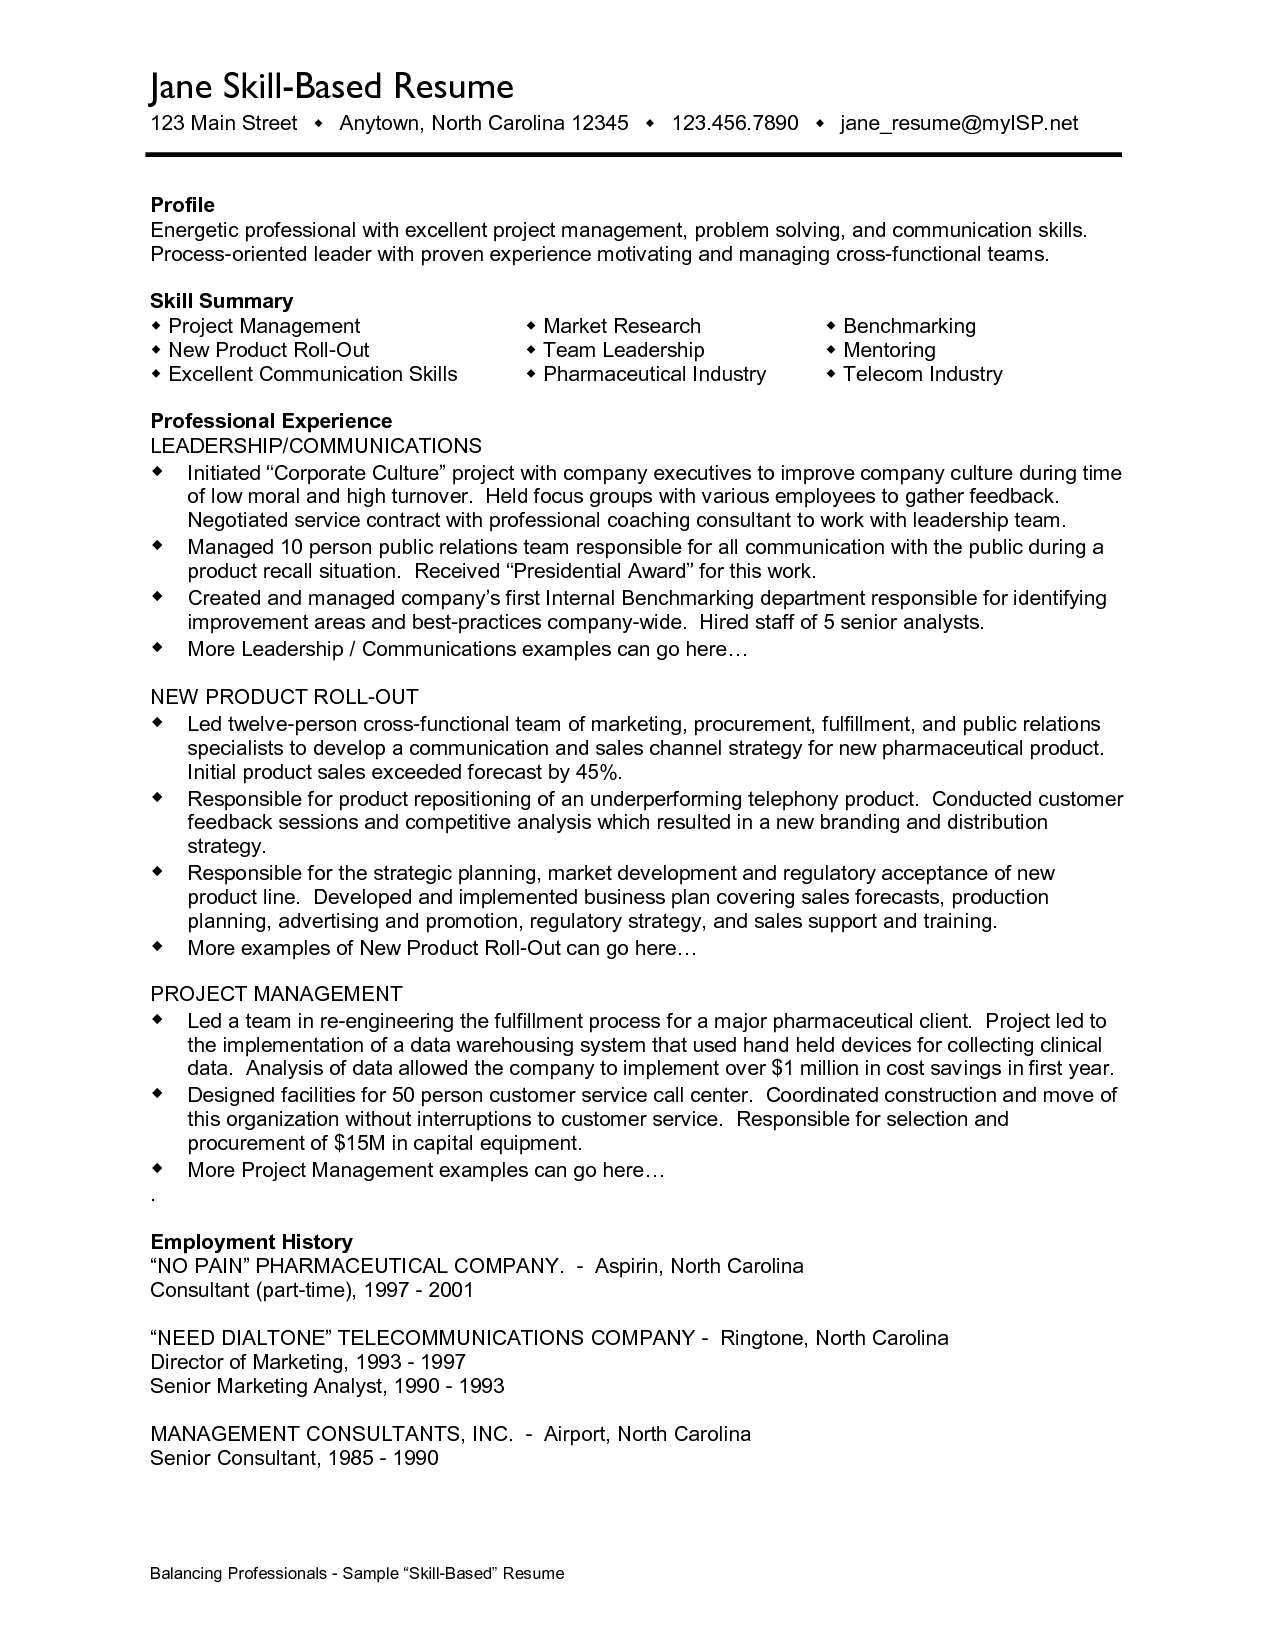 Awesome Job Skills Resume In Job Resume Skills